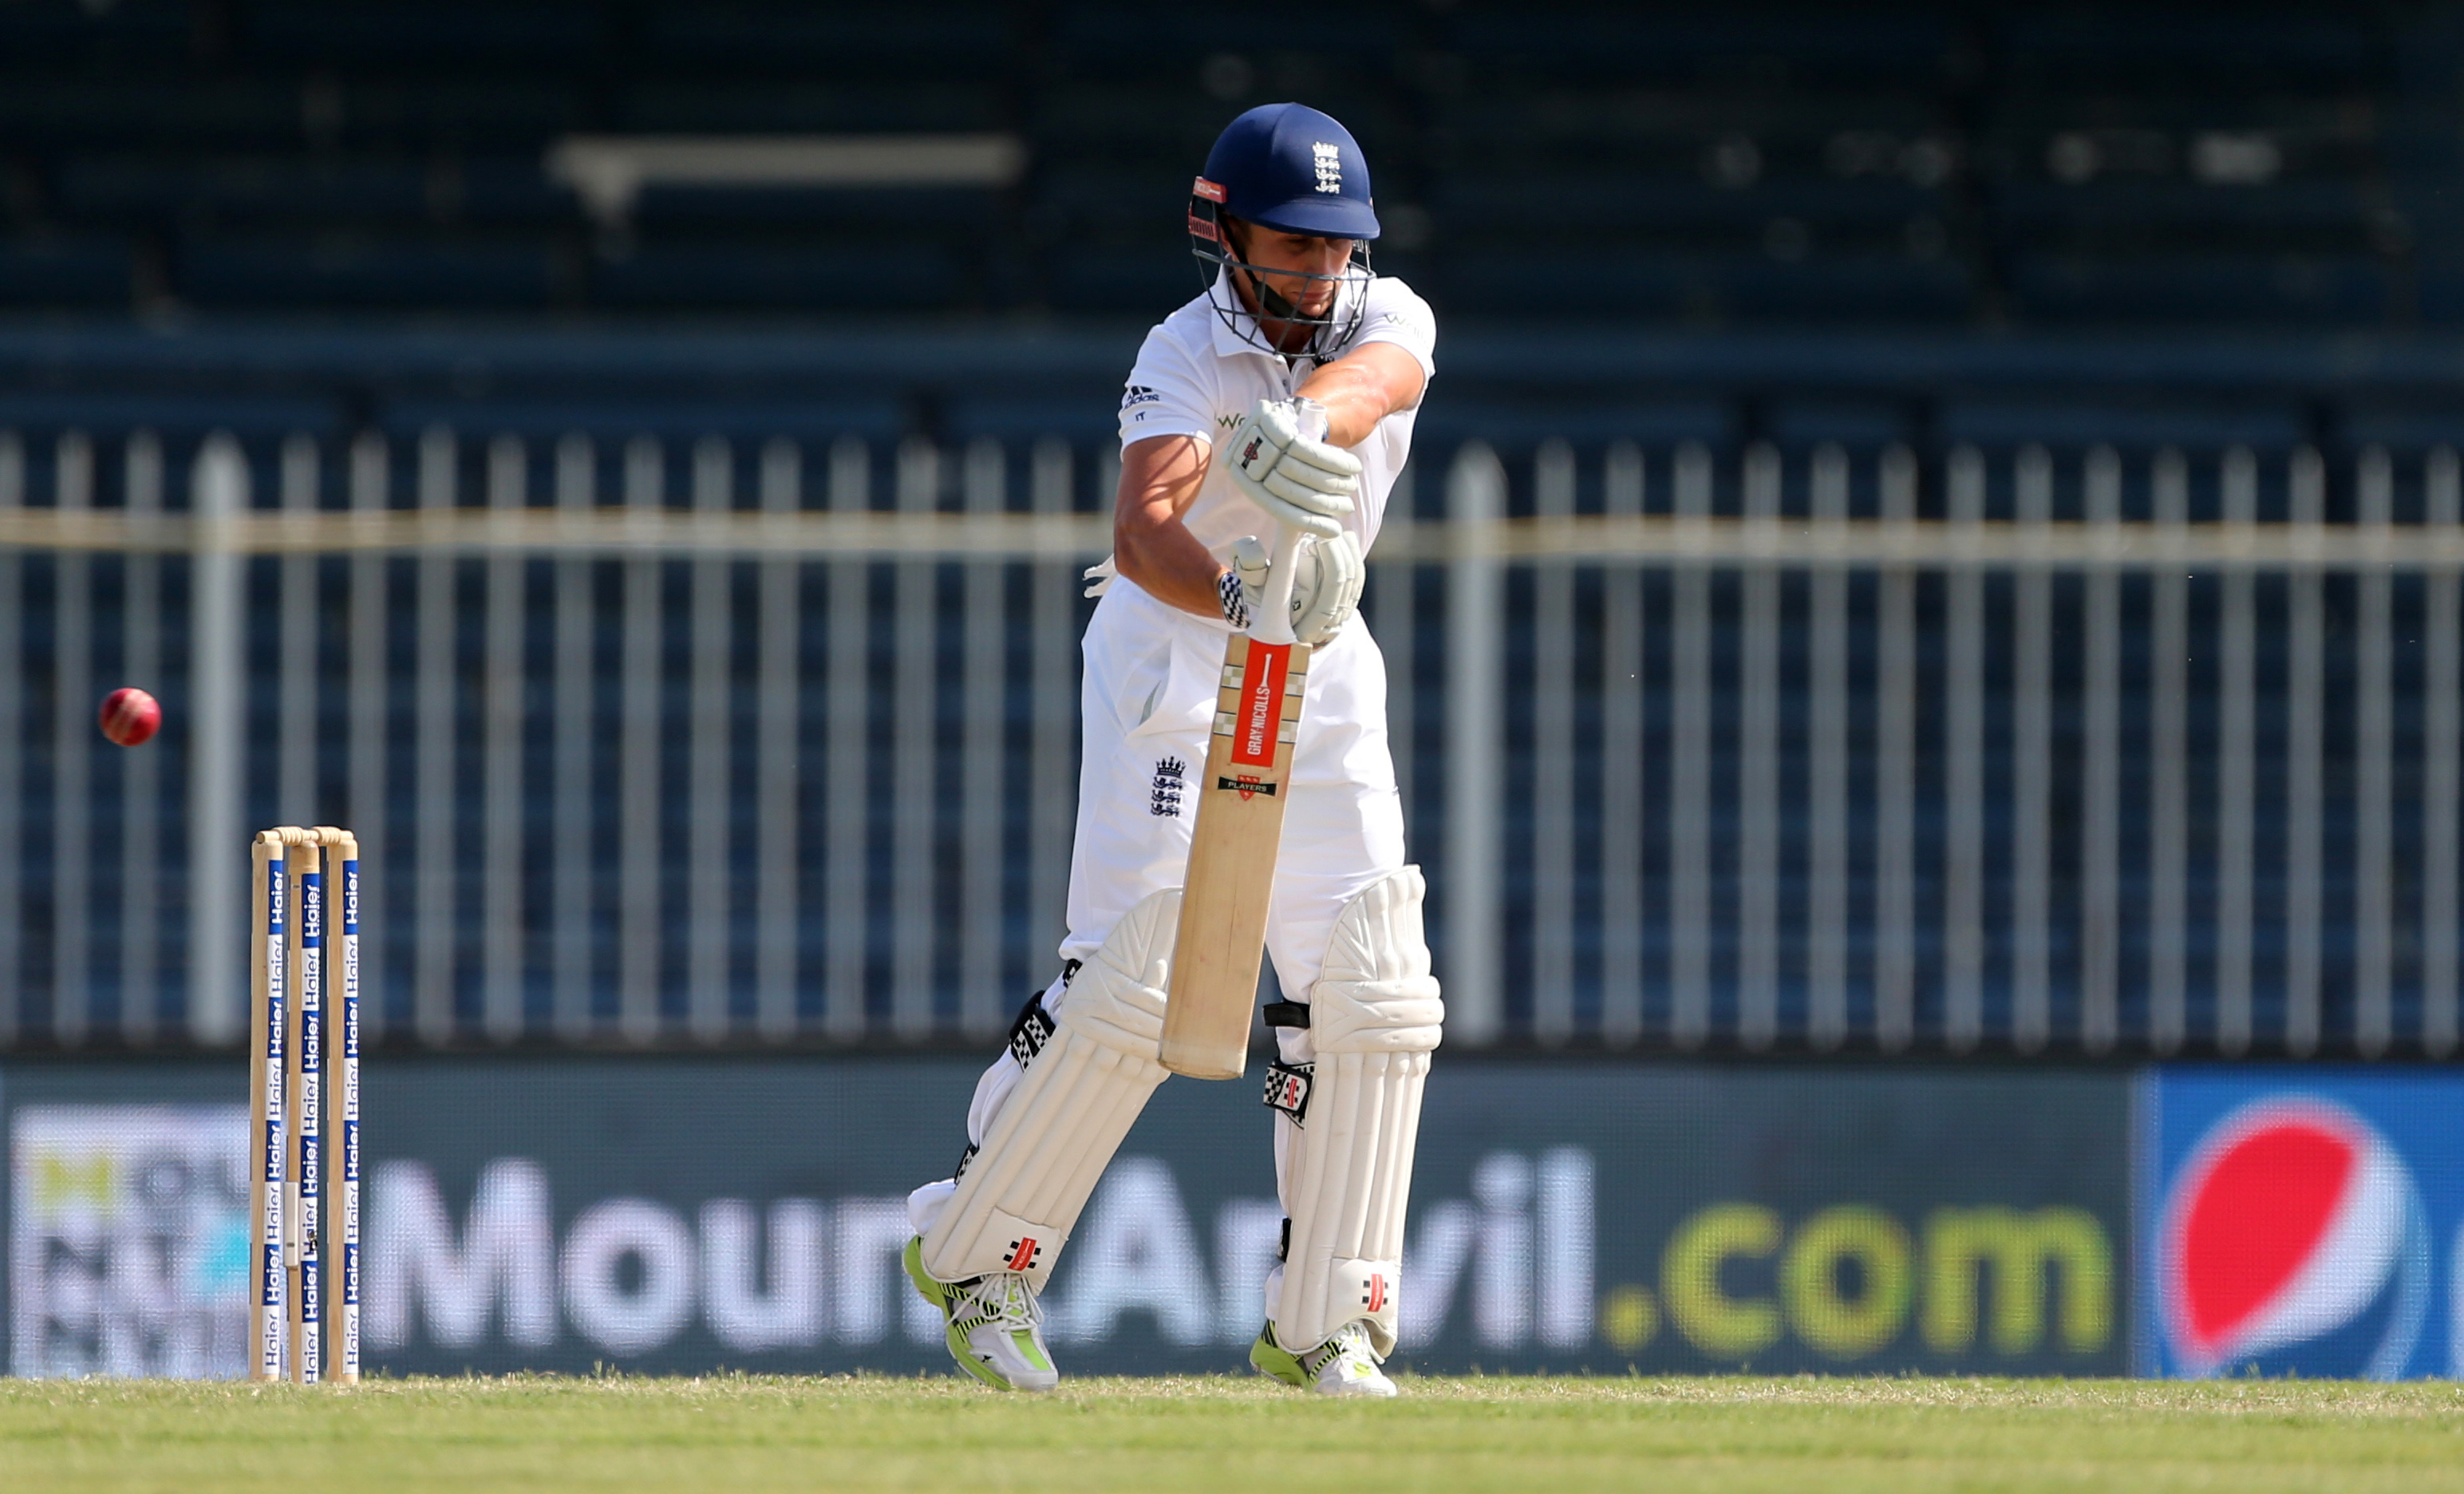 Cricket - Pakistan v England - Third Test - Sharjah Cricket Stadium, United Arab Emirates - 3/11/15nEngland's James Taylor in action as he is caught outnAction Images via Reuters / Jason O'BriennLivepic